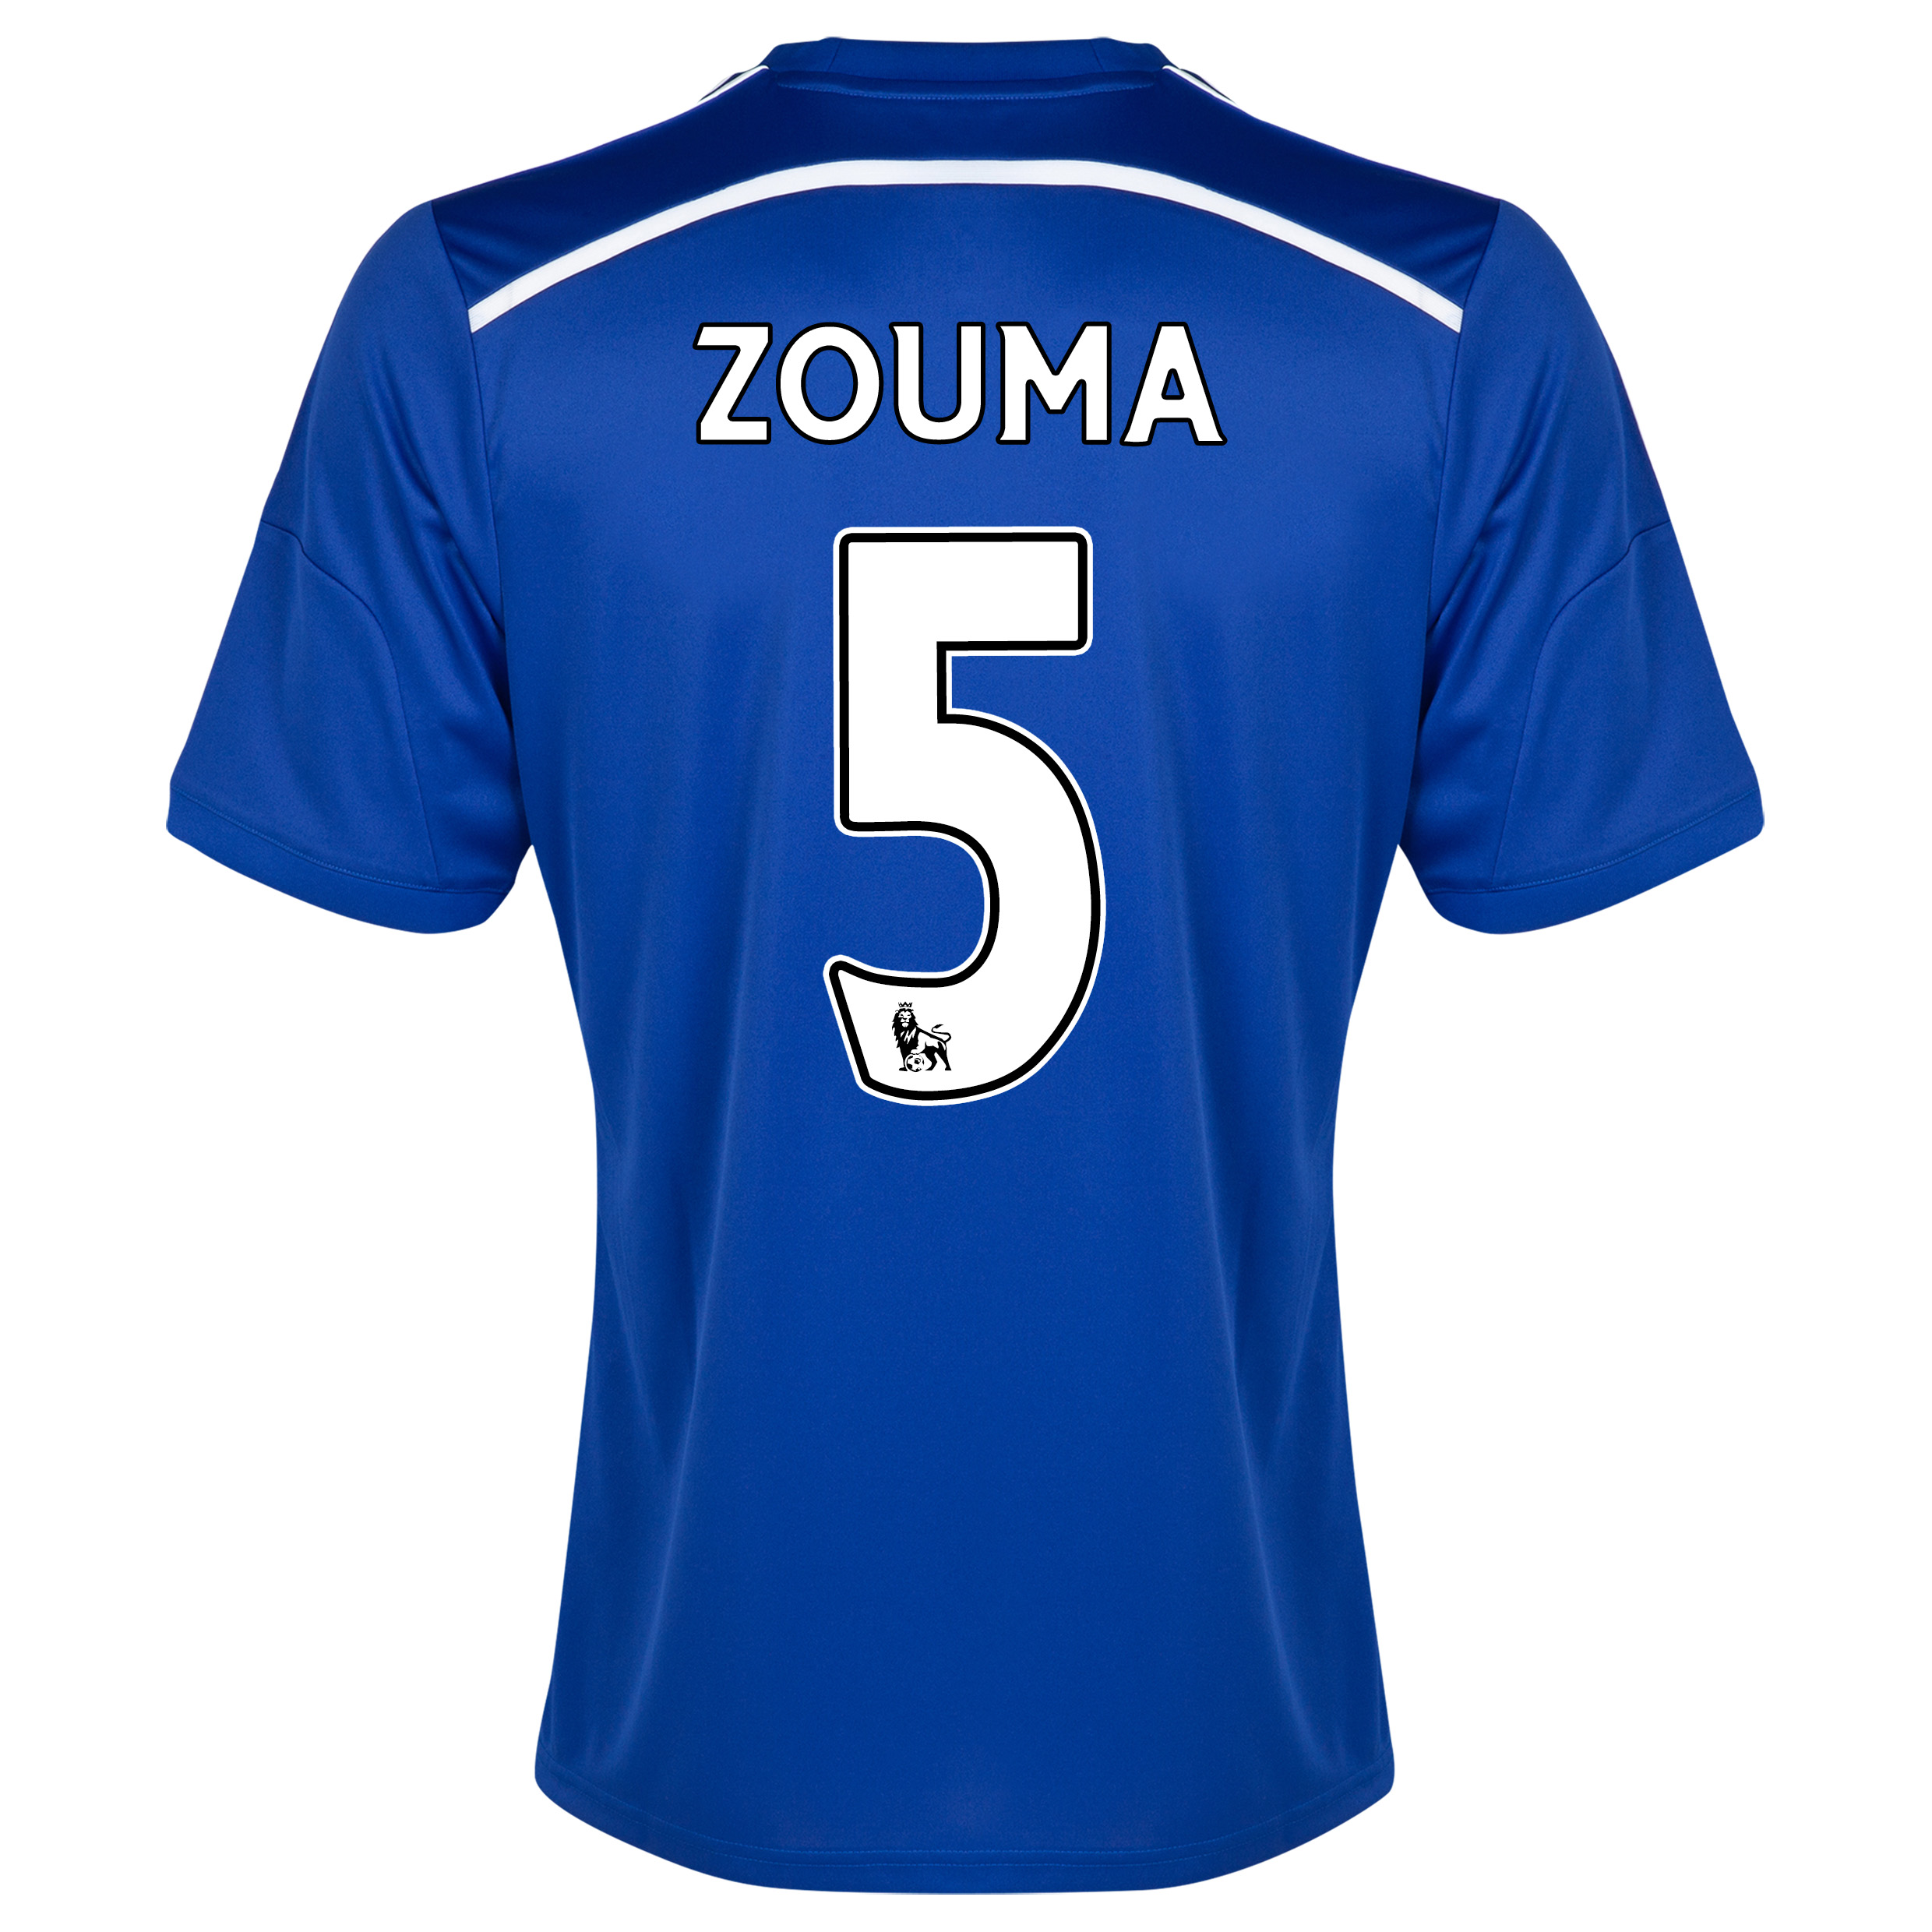 Chelsea Home Shirt 2014/15 - Kids with ZOUMA 5 printing